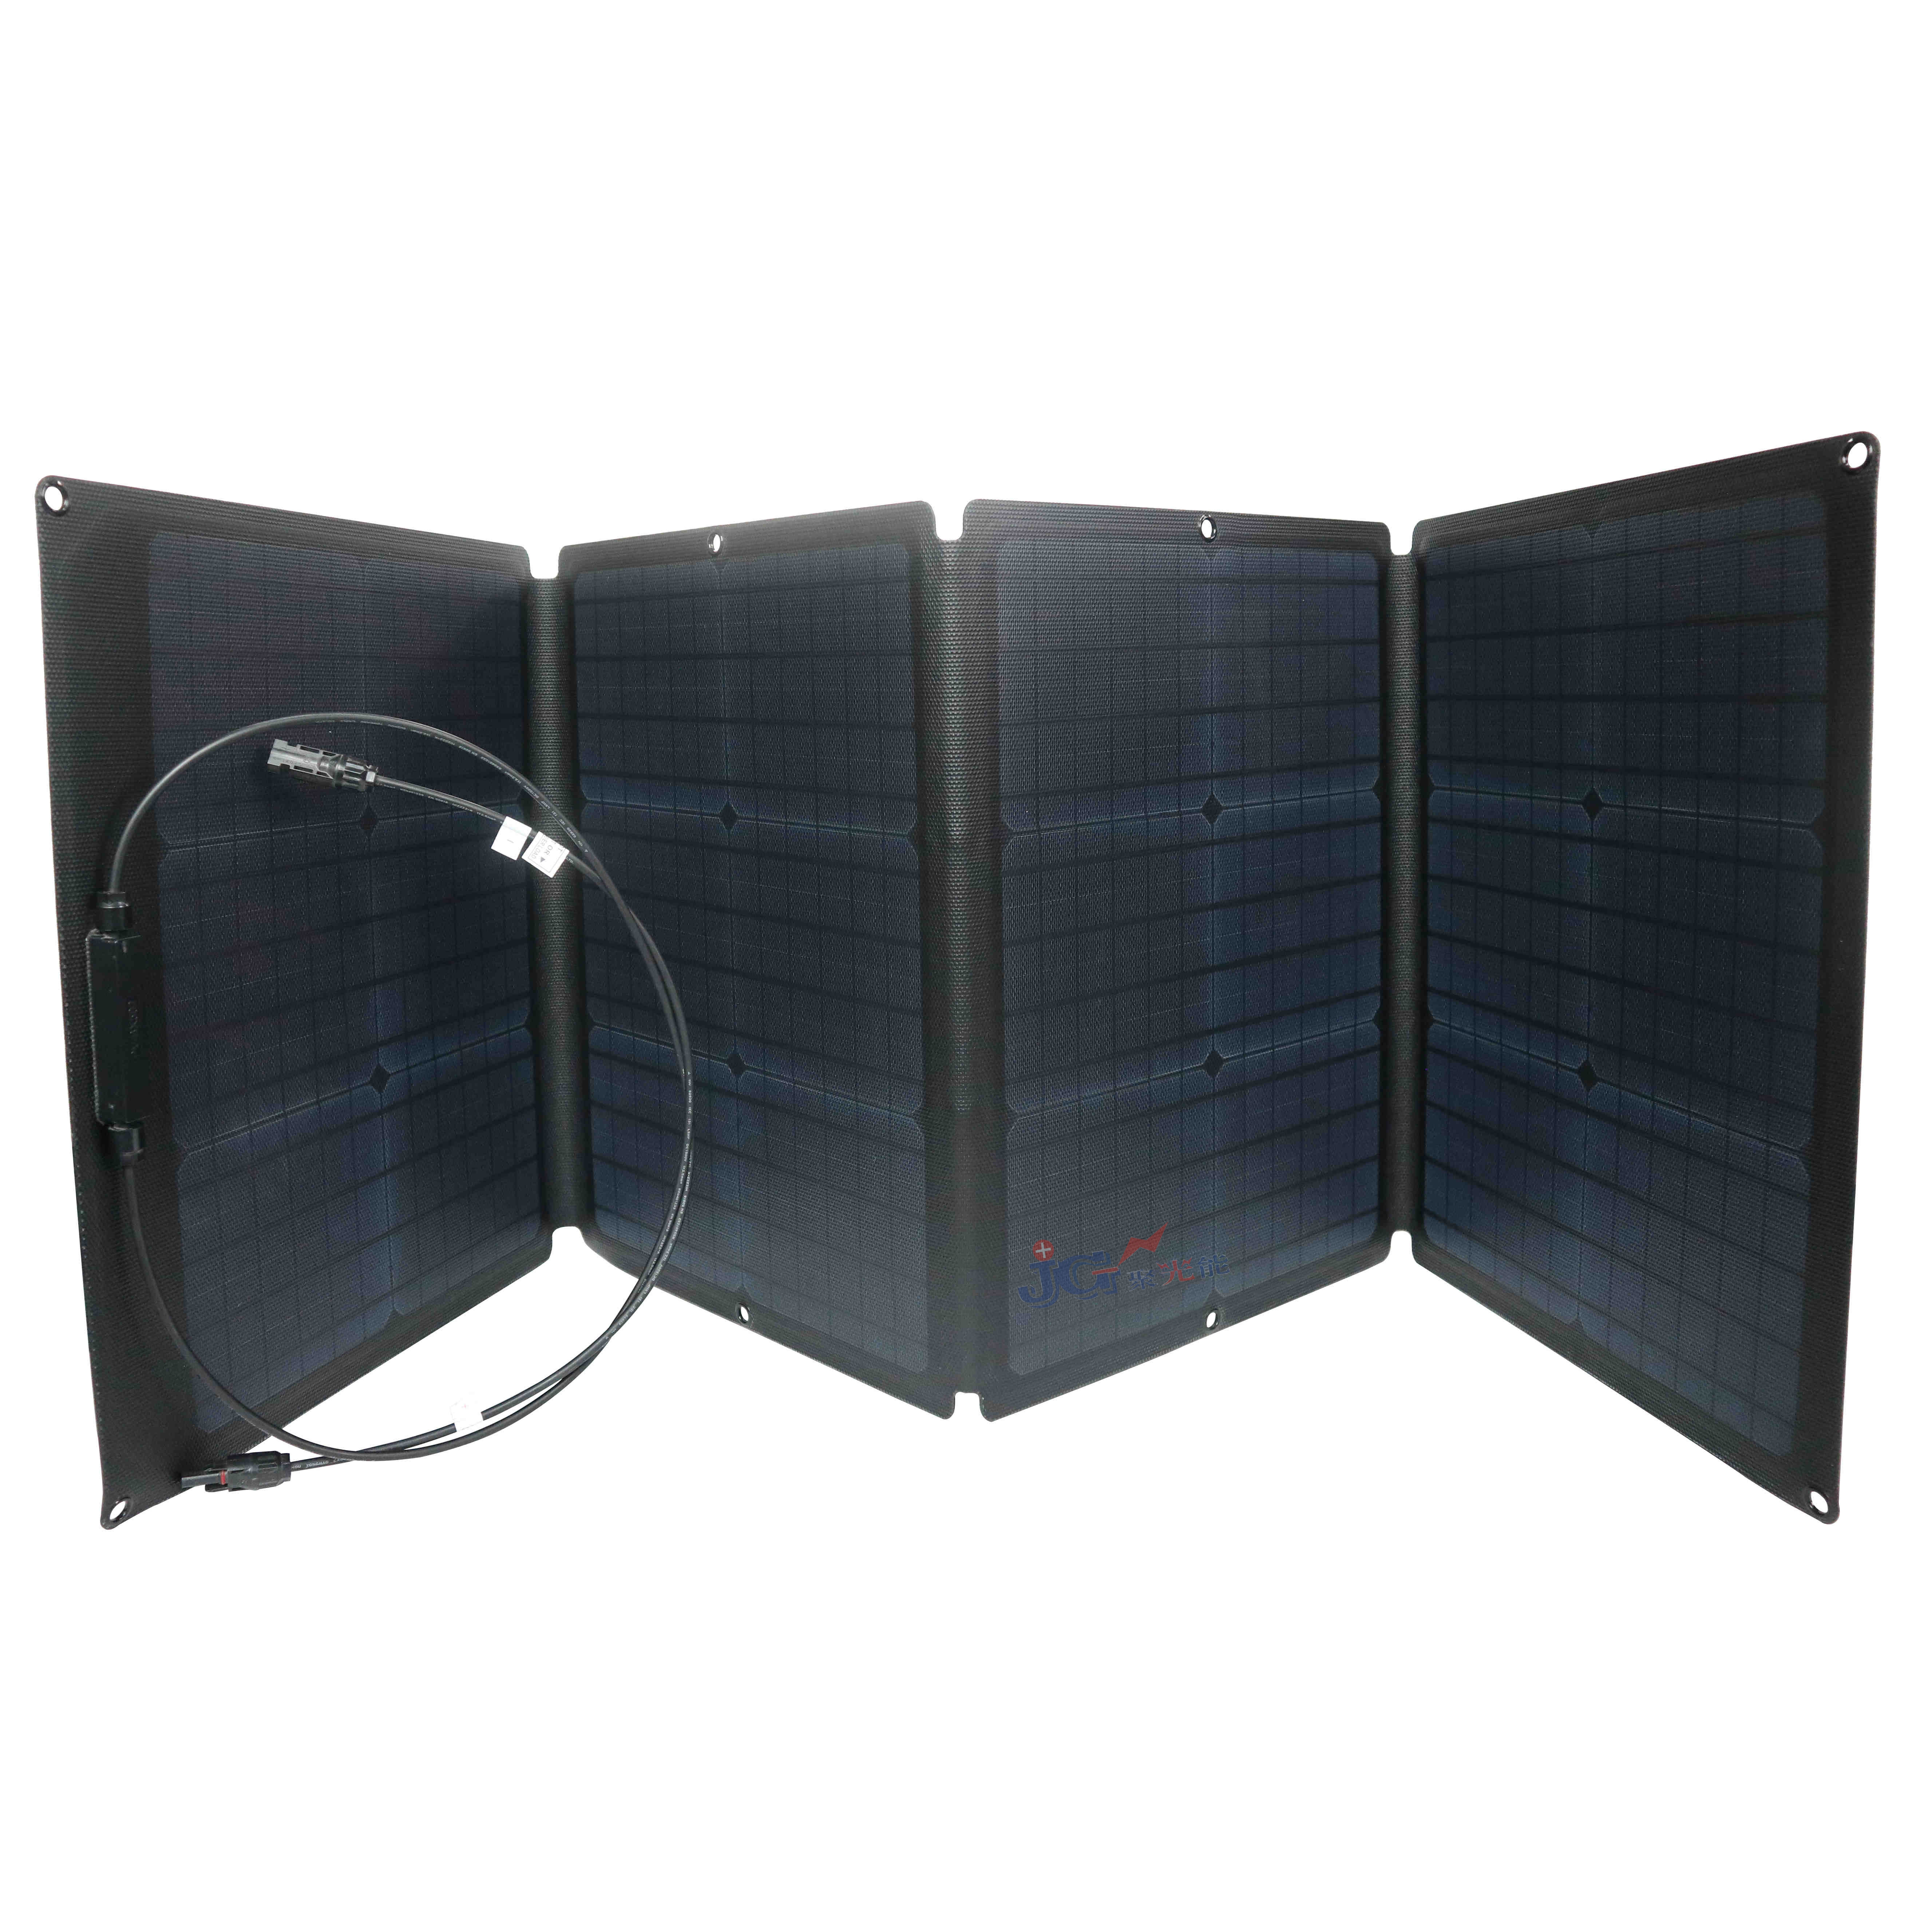 120W Foldable ETFE-laminated Solar Panel